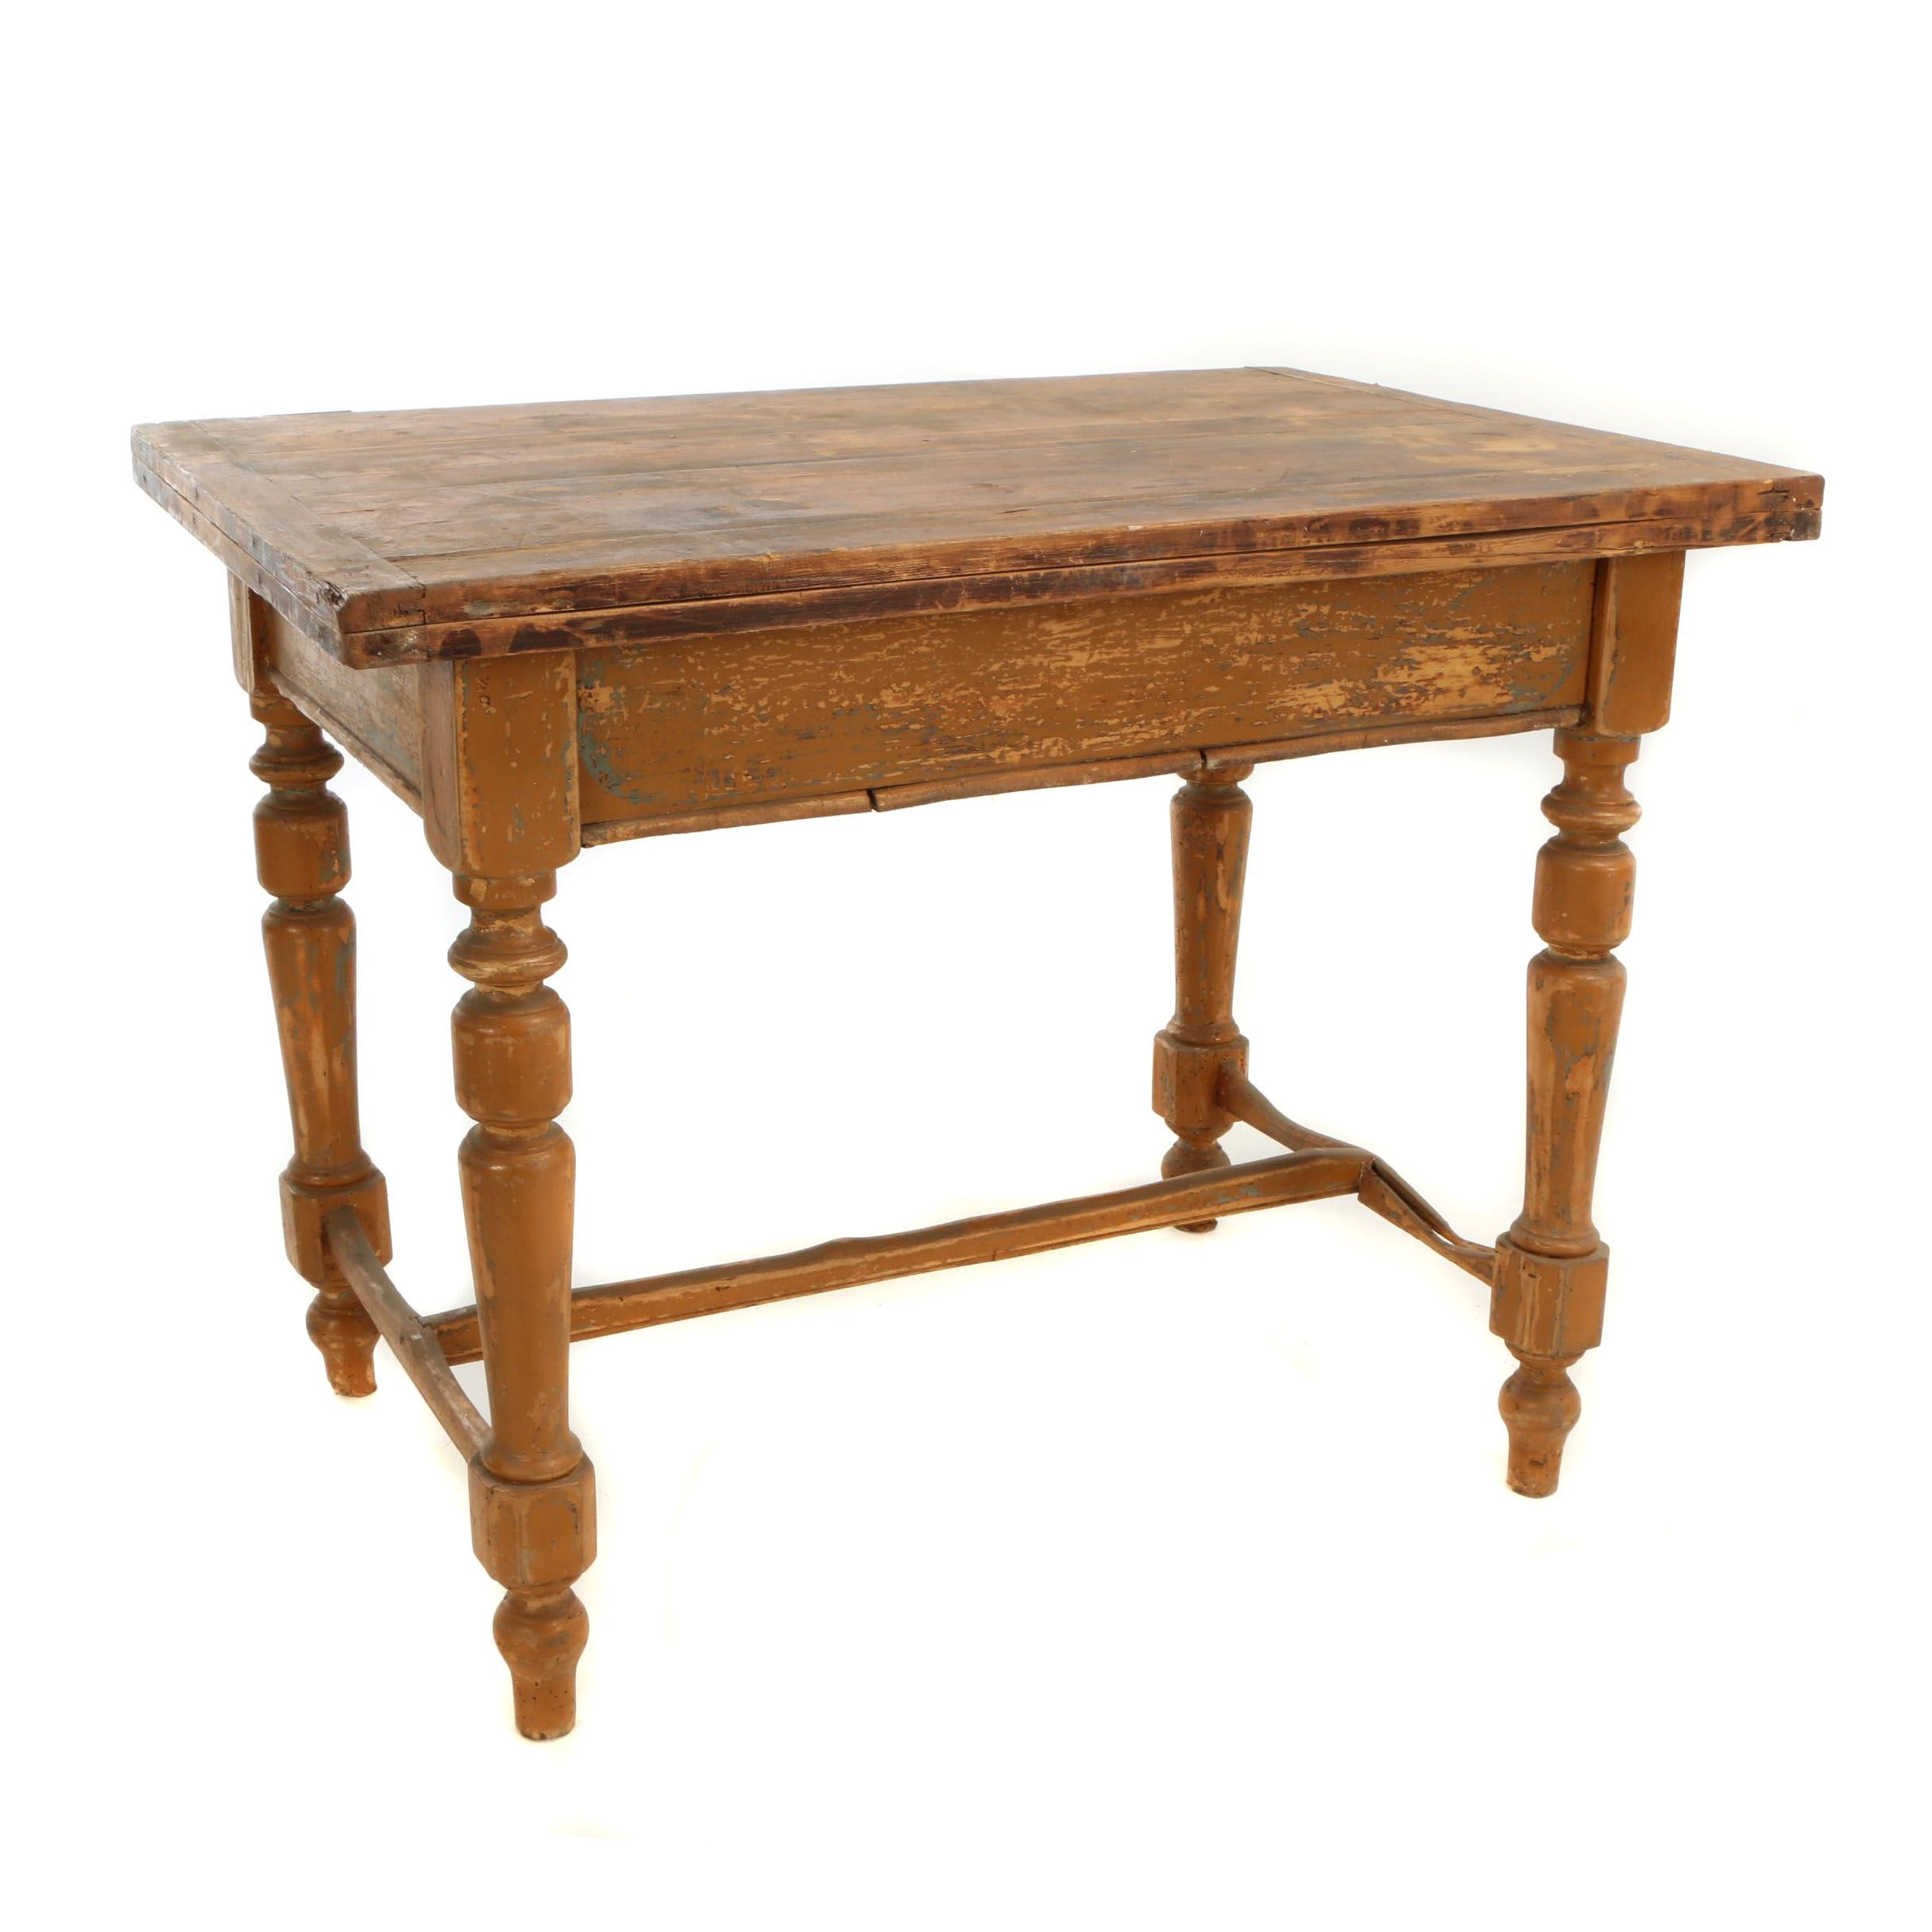 Continental Painted Pine Work Table with Expandable Top, Early 20th Century